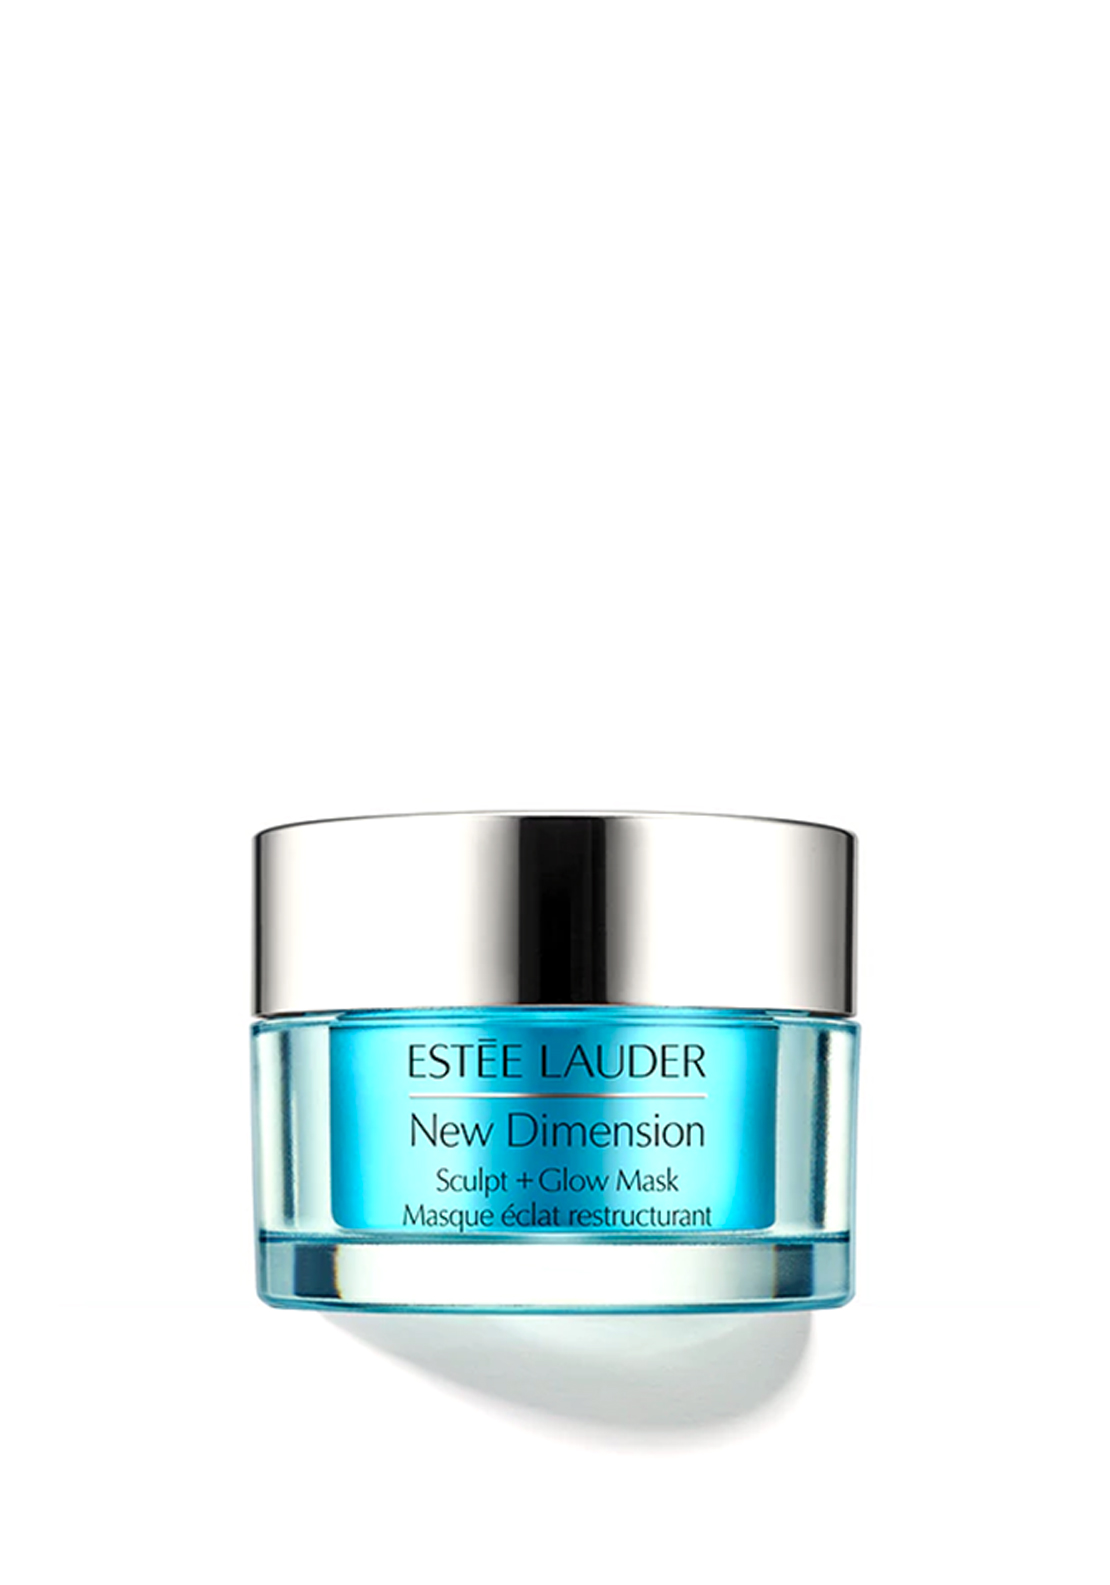 Estee Lauder New Dimension Sculpt & Glow Mask, 50ml